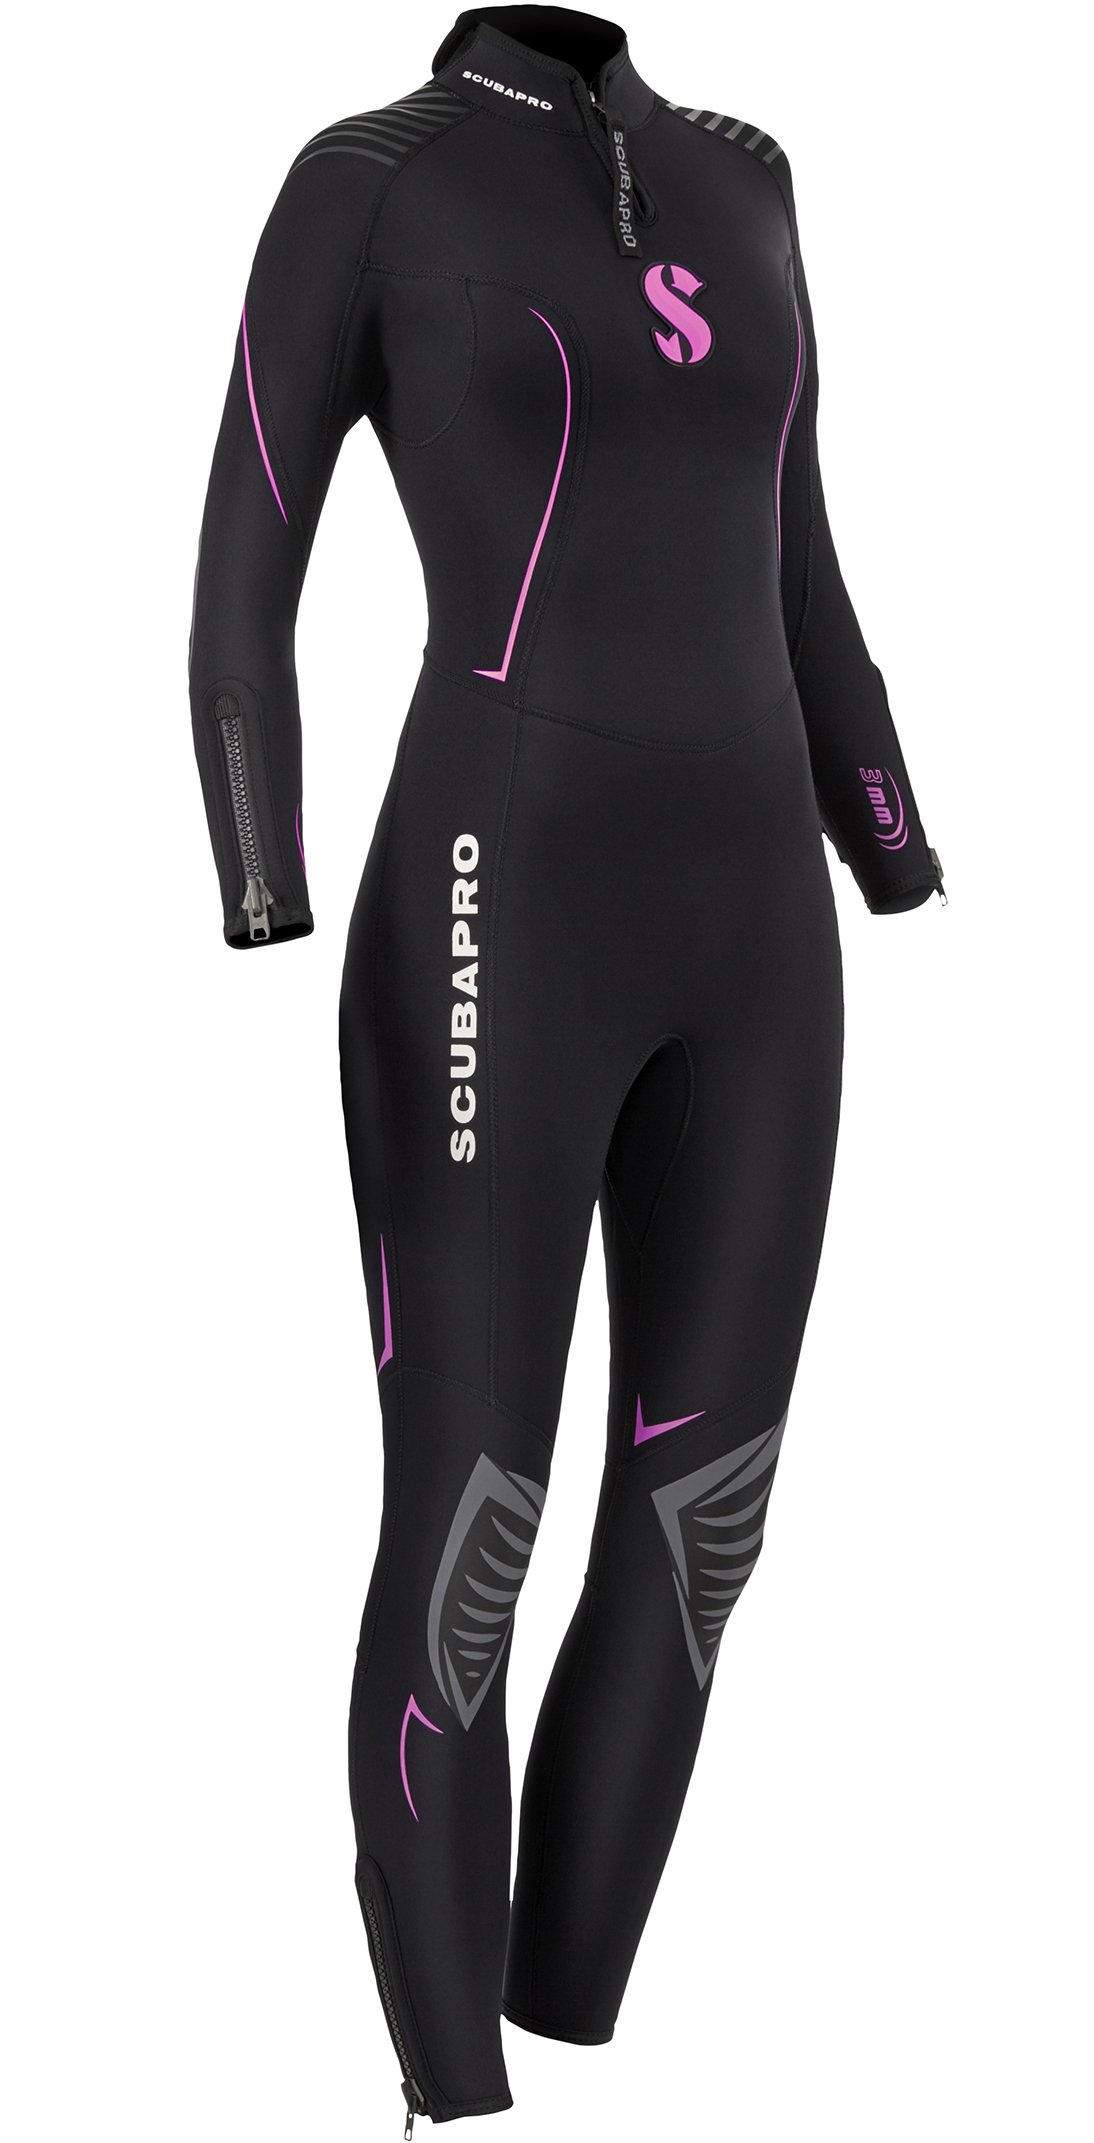 Scubapro Women's Definition Steamer 3mm Wetsuit, Small - Black/Pink by Scubapro (Image #1)